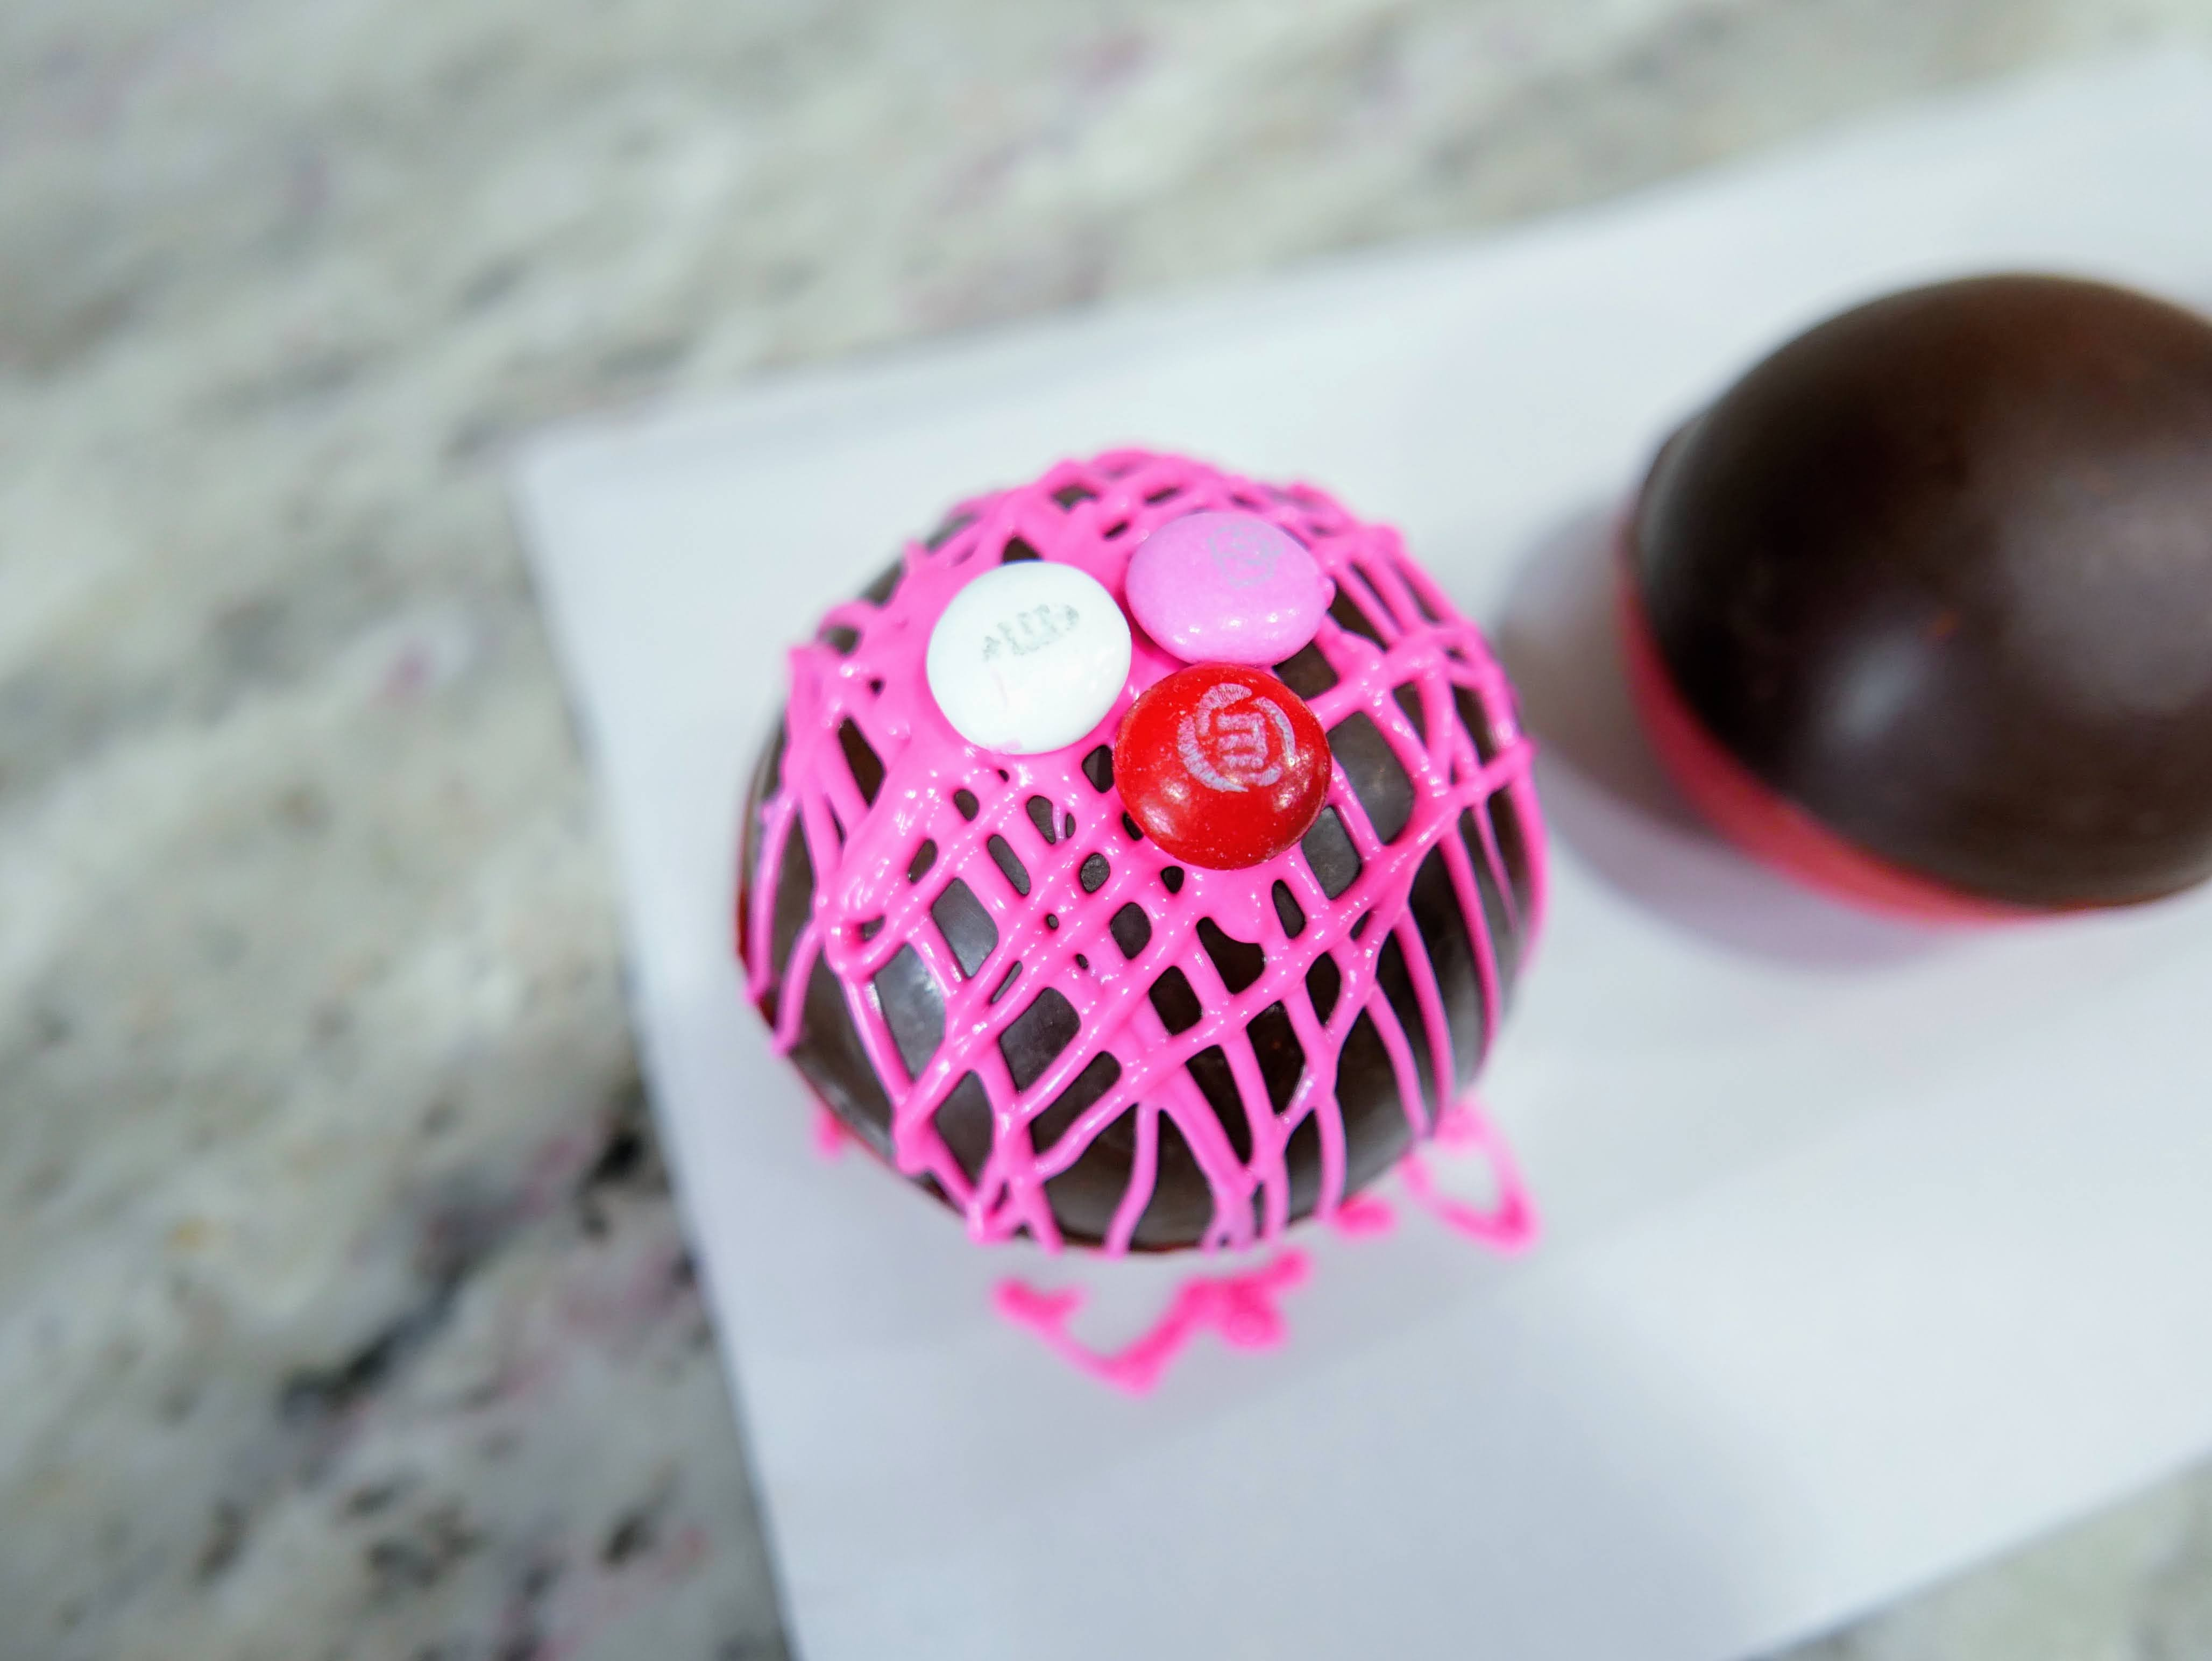 hot chocolate bombs with valentine's decorations